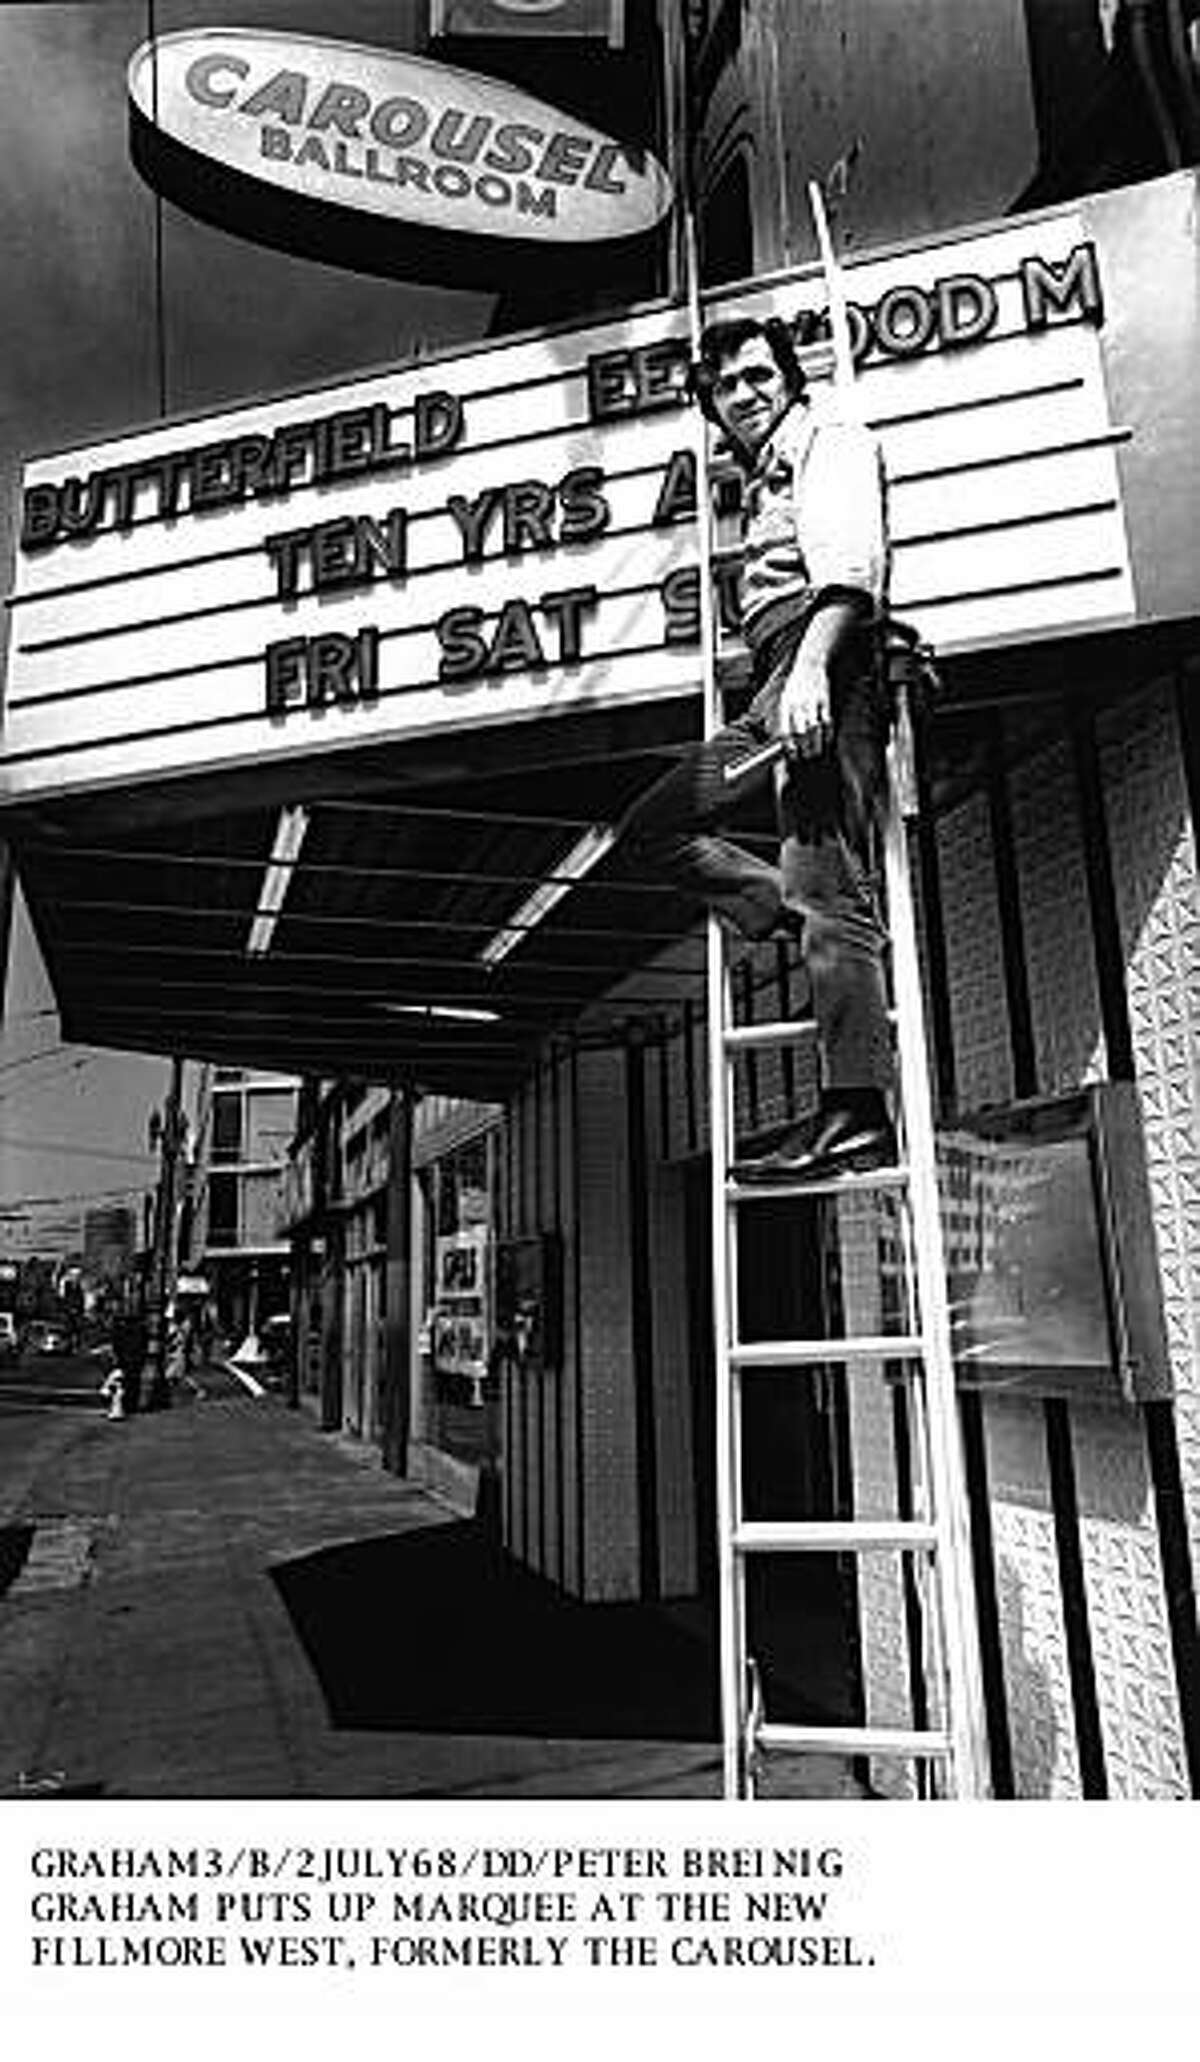 BILL GRAHAM, WITH THE MARQUEE OF HIS FILLMORE WEST NIGHTCLUB, FORMERLY THE CAROUSEL BALLROOM